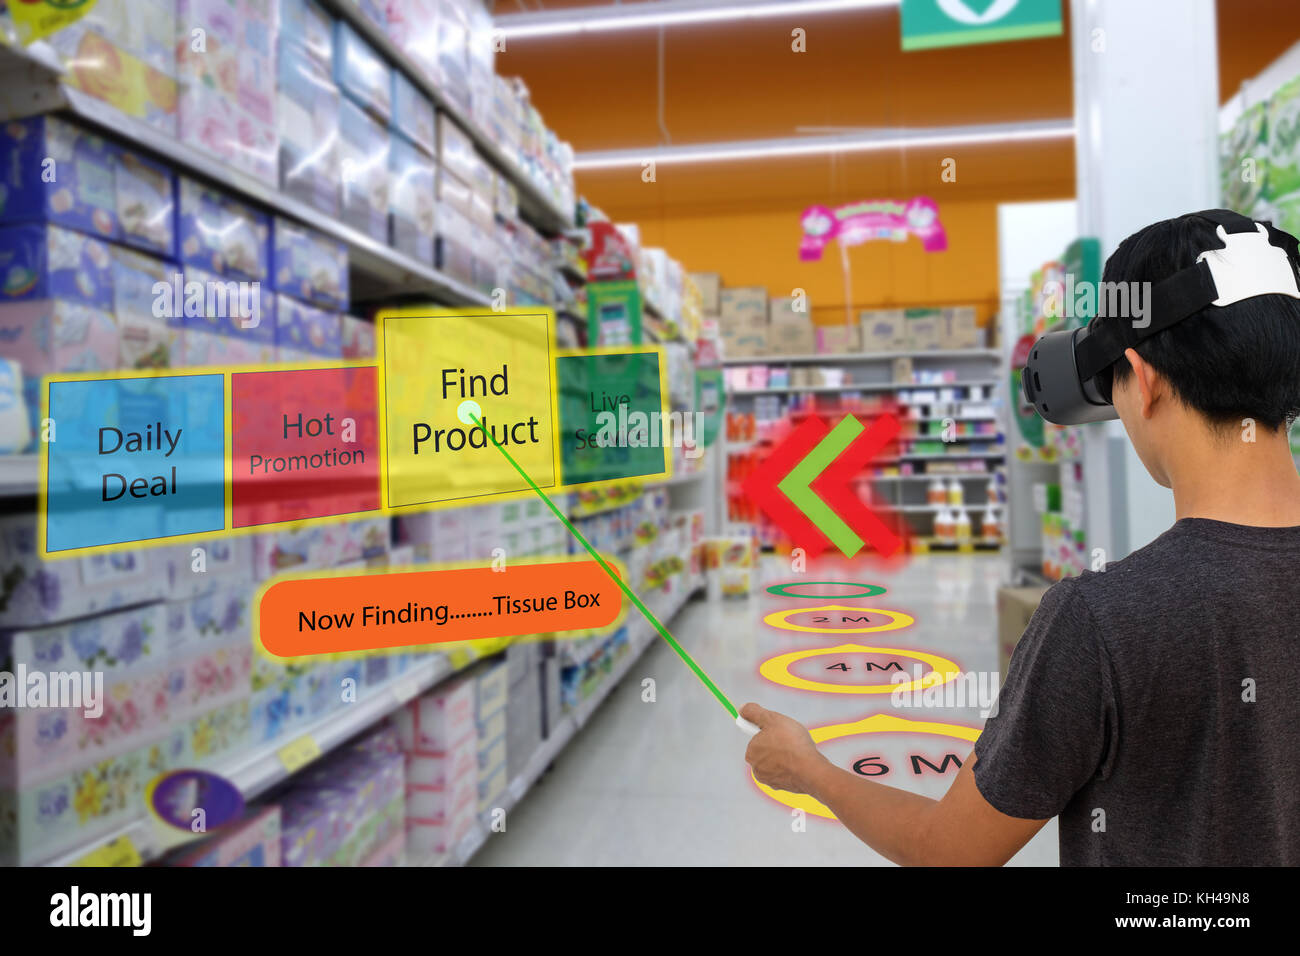 smart retail with augmented and virtual reality technology concept stock photo  165437924